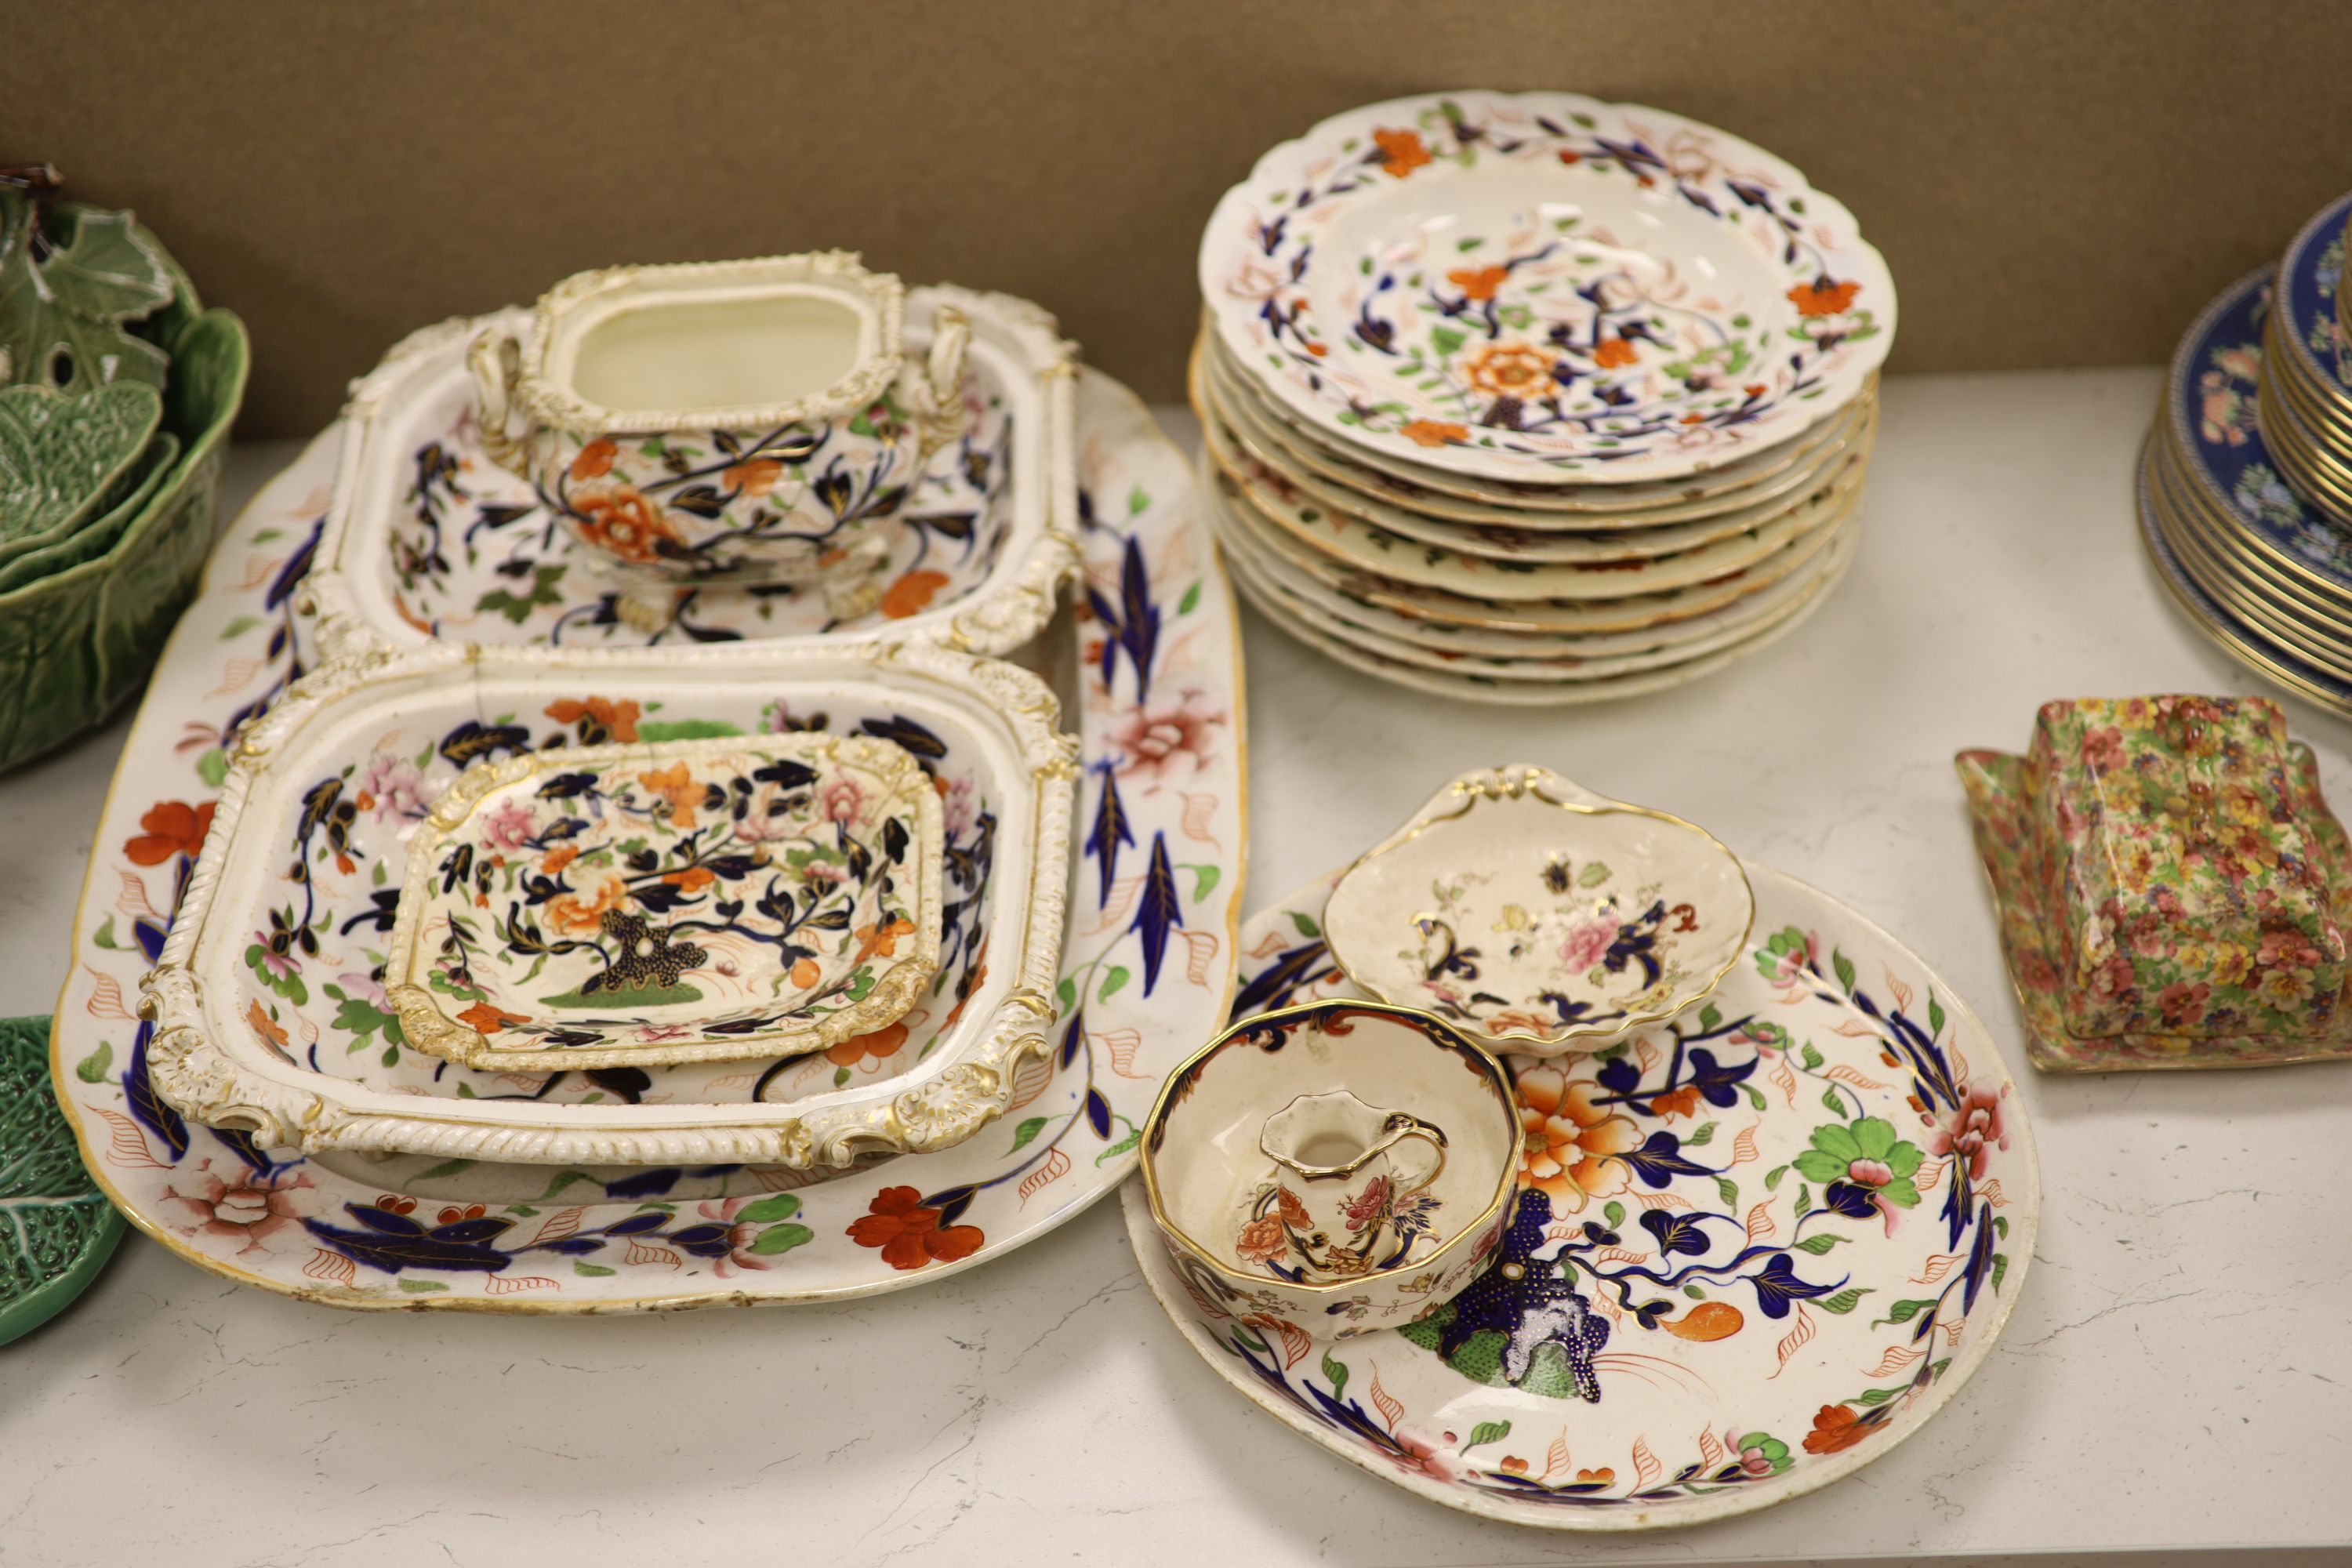 A Wedgwood 'Blue Siam' pattern part dinner service and other mixed ceramics - Image 3 of 8